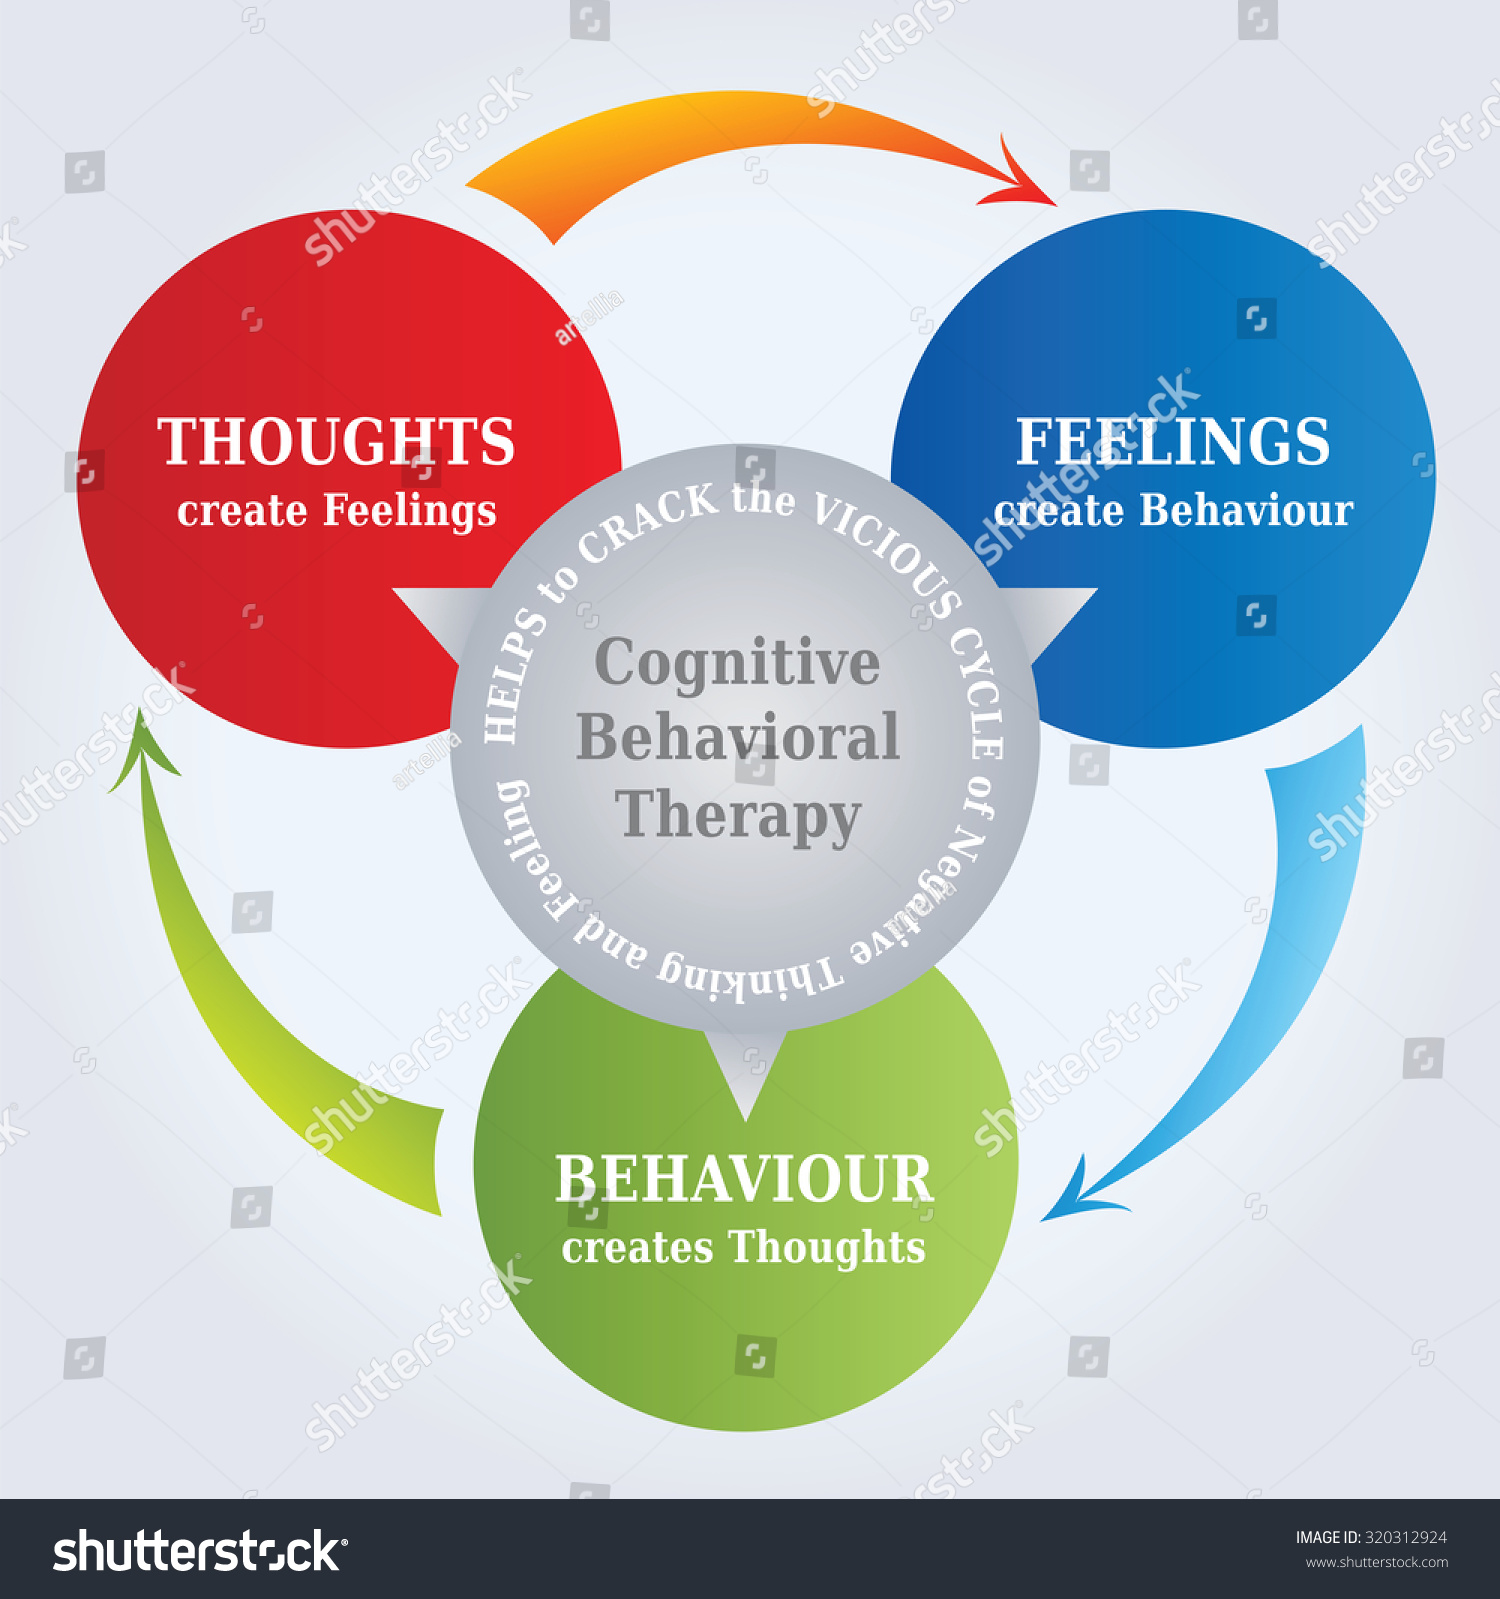 Cbt Cognitive Behavioral Therapy Cycle Diagram Stock